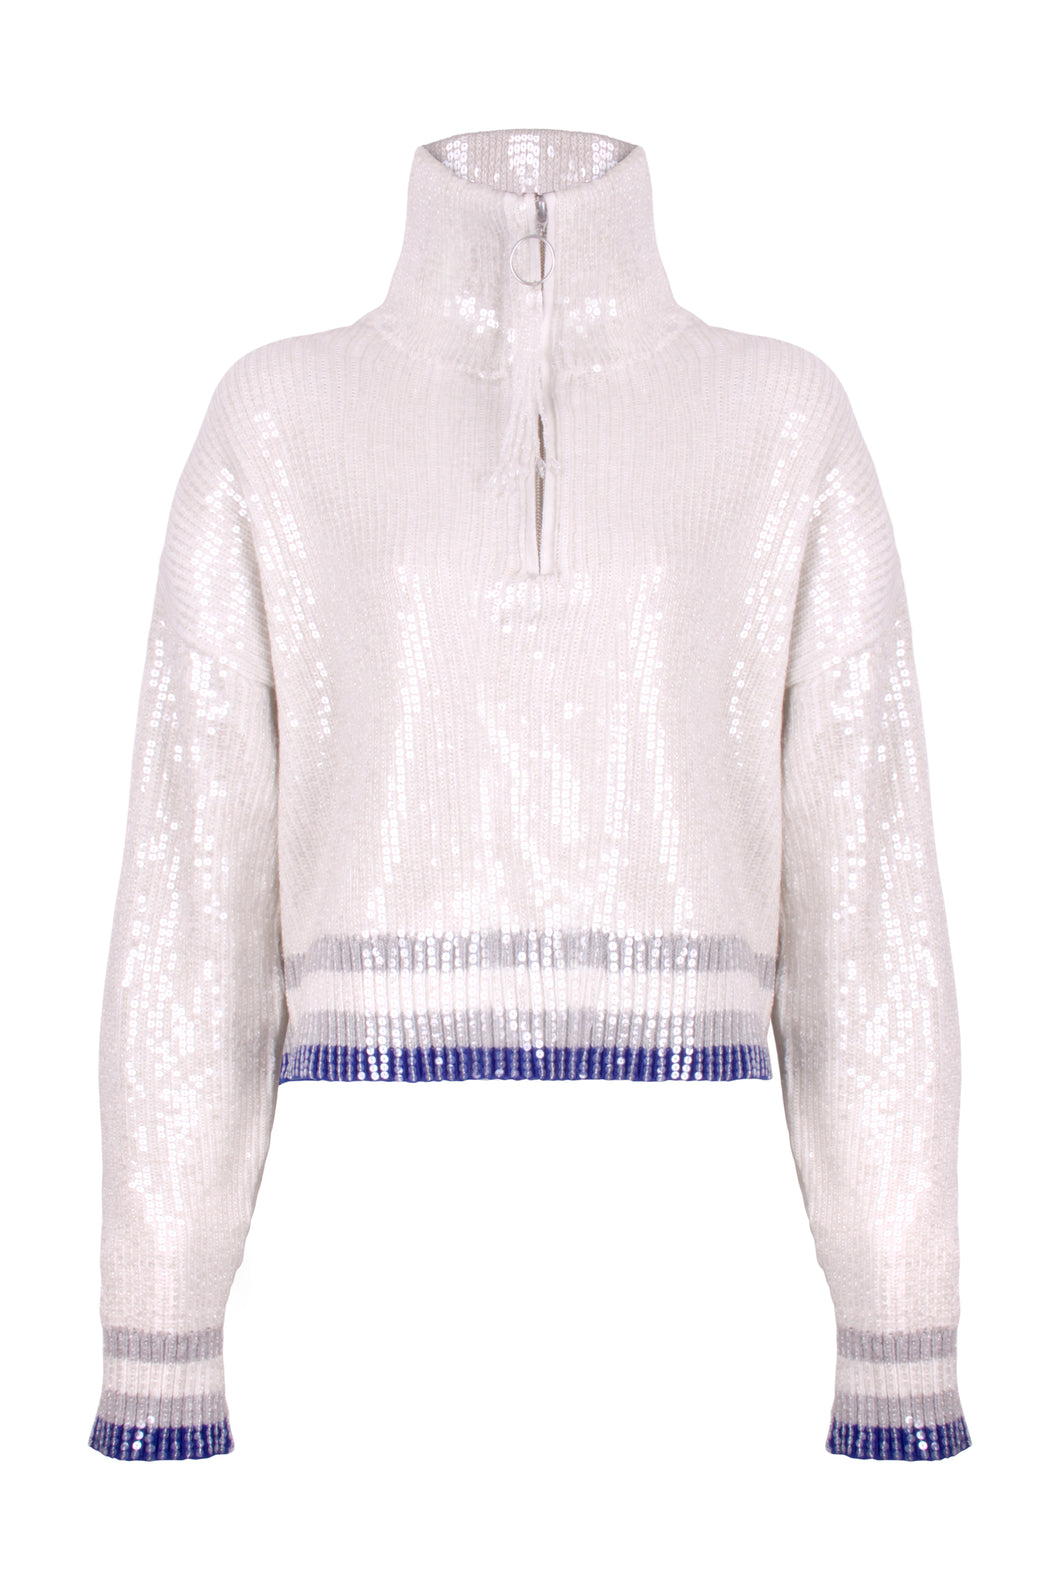 White Sequin Zip Jumper